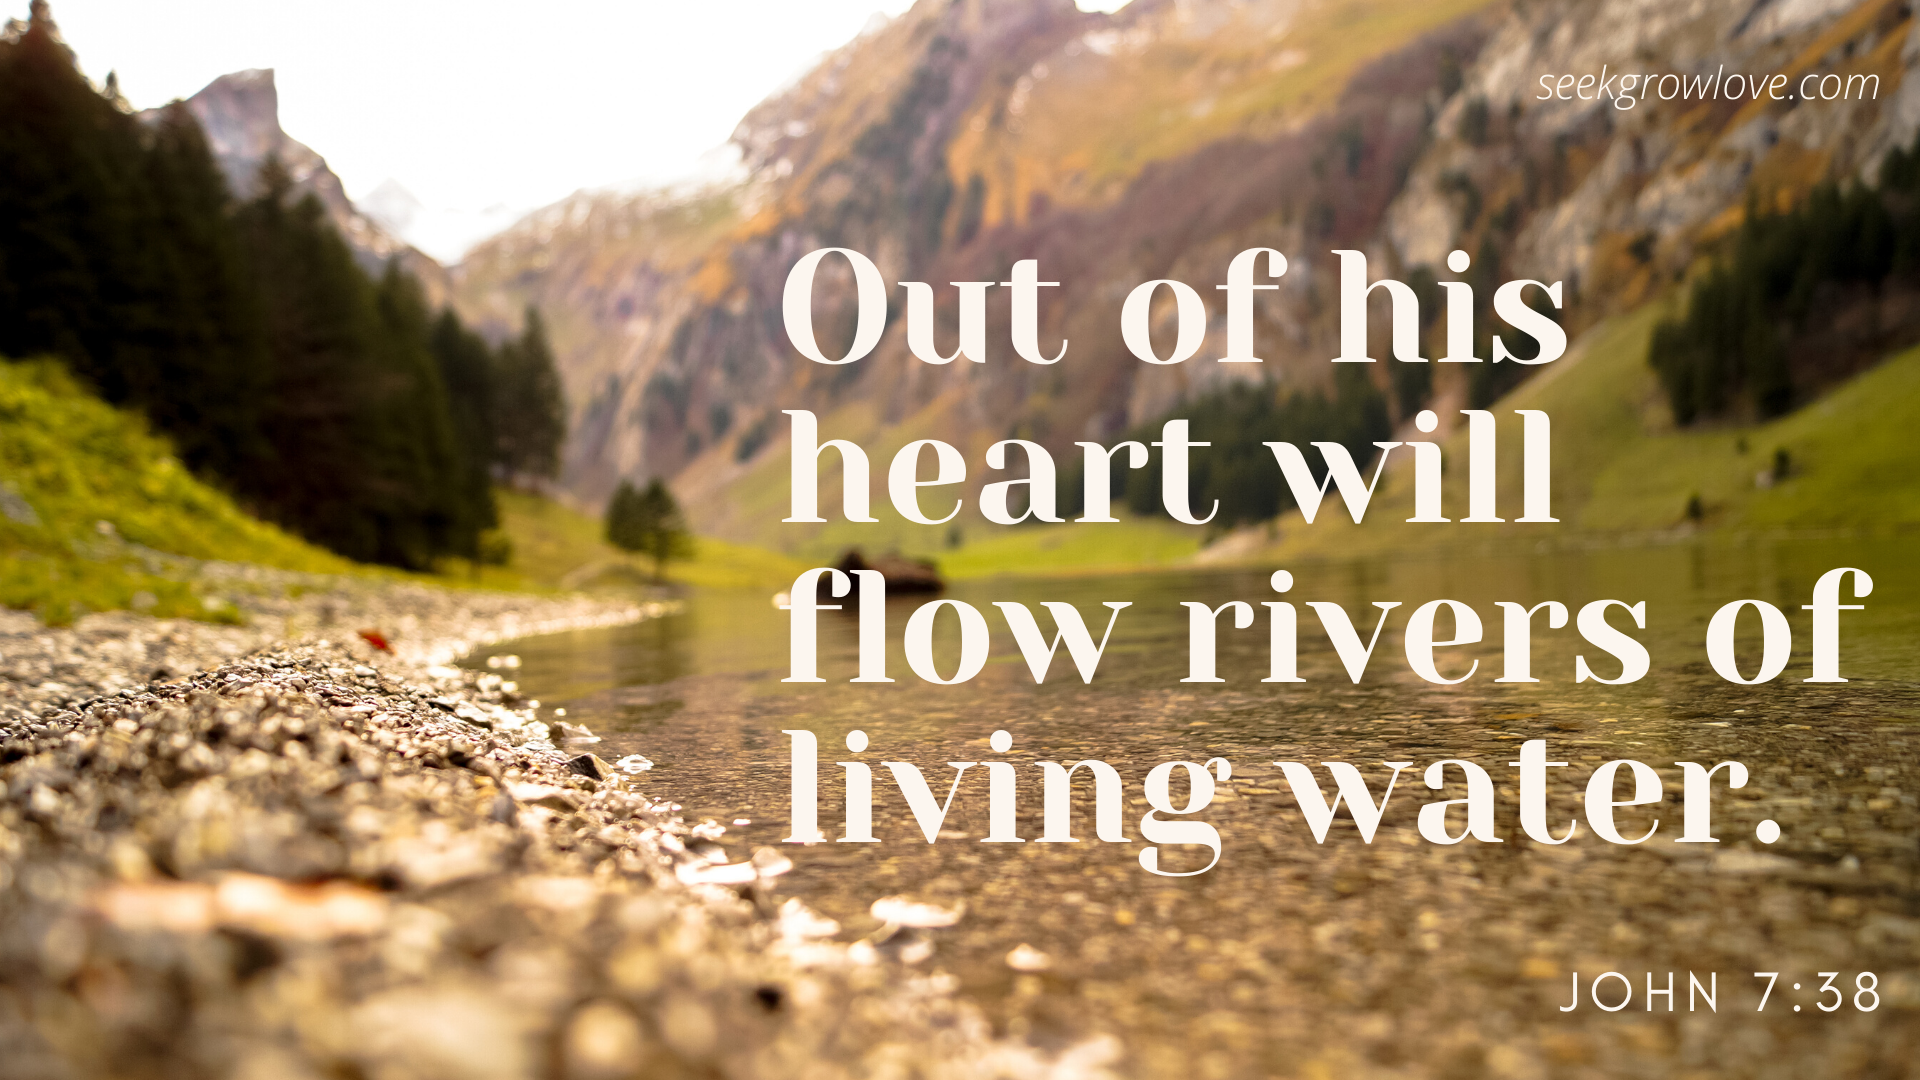 Out of his heart will flow rivers of living water.